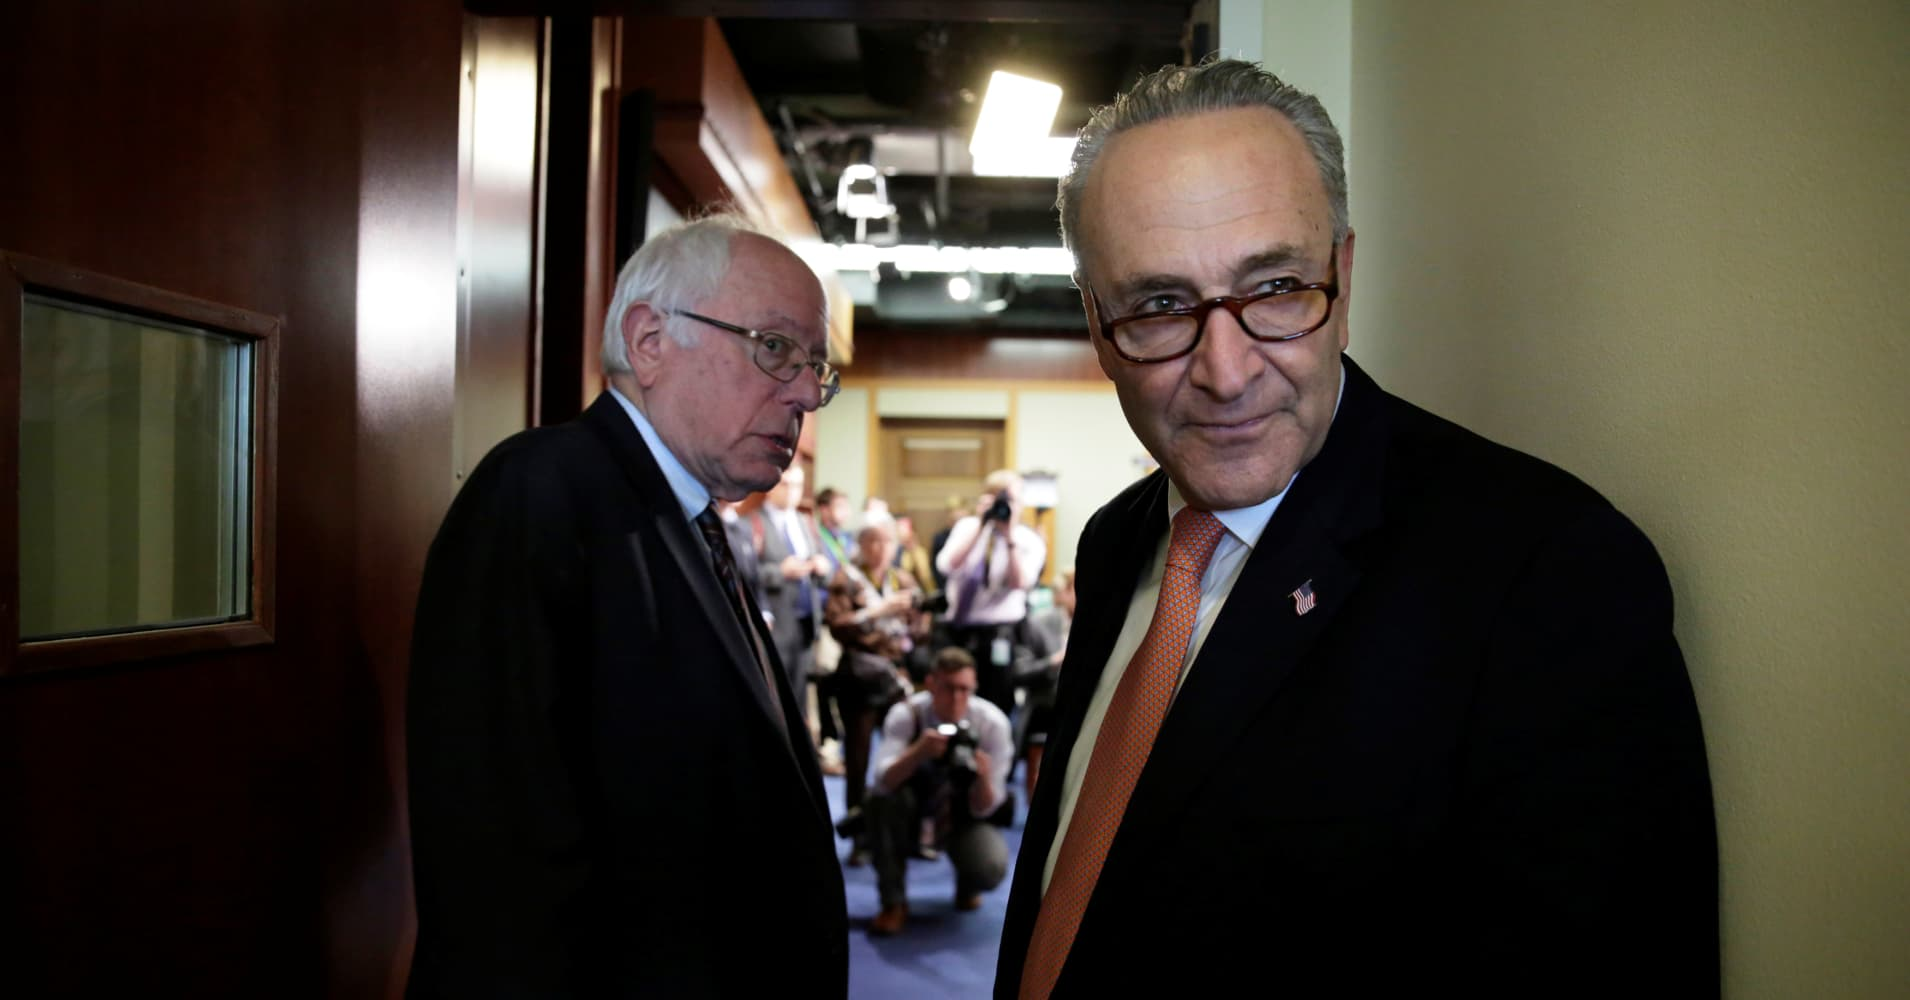 Sanders and Schumer's buyback plan is treating the wrong problem, says economist